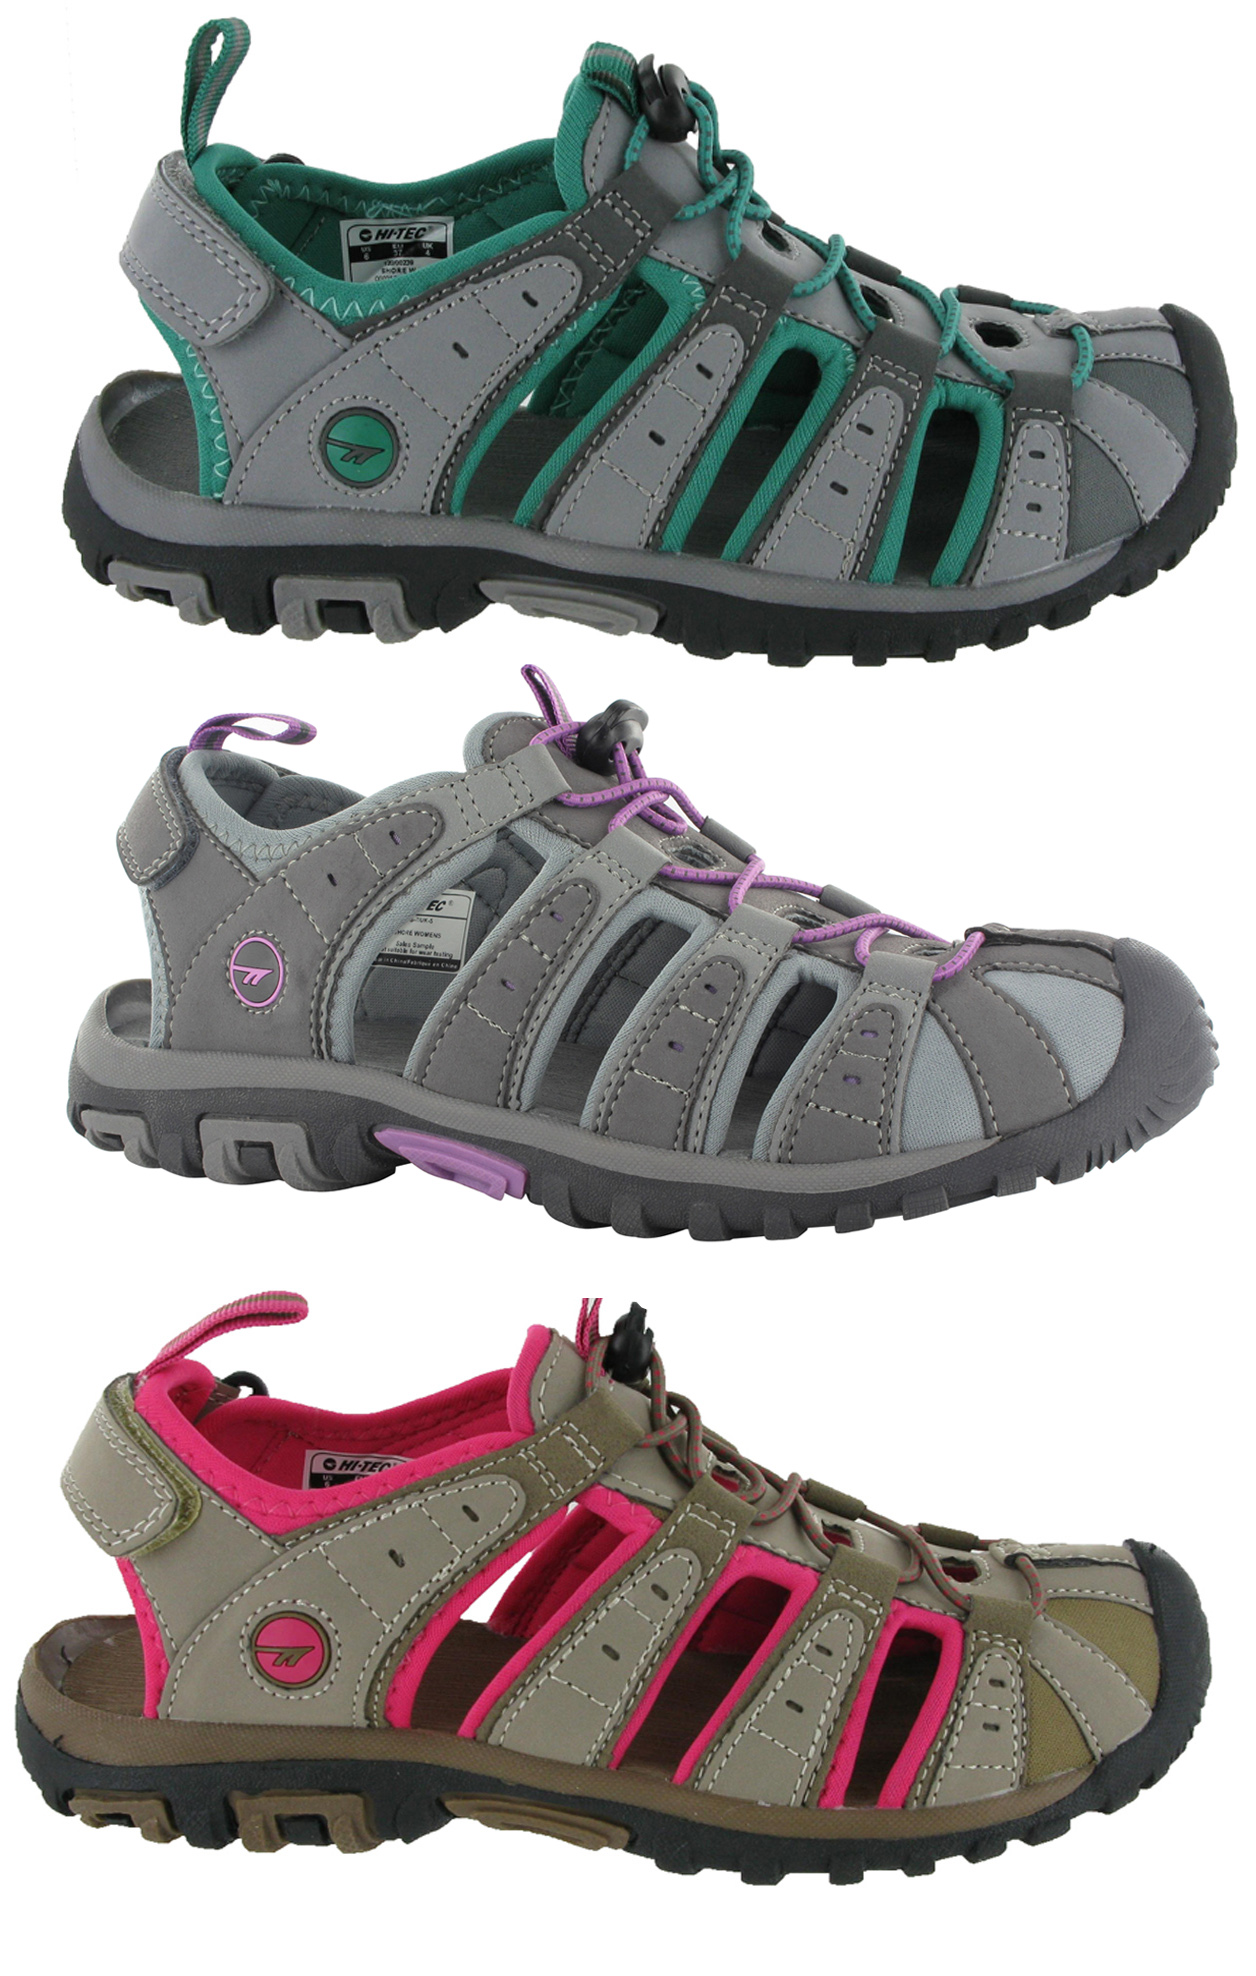 WOMENS SPORTS WALKING VELCRO FLAT CLOSED TOE SANDALS SHOES SIZE 3 - 9